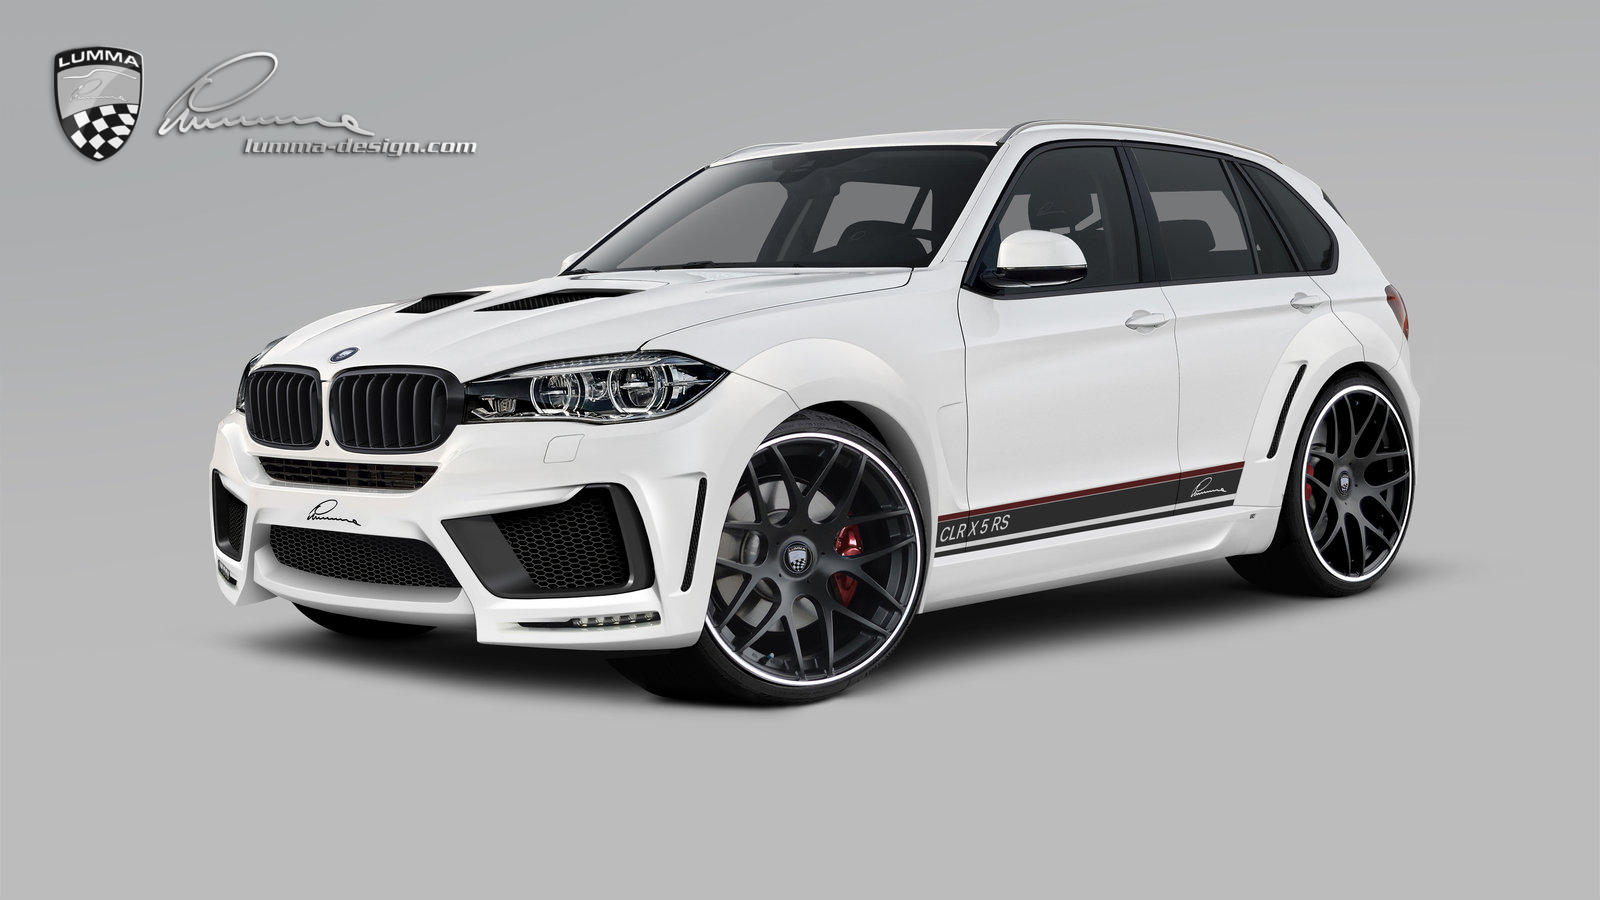 la nouvelle bmw x5 d j pr par e par lumma design. Black Bedroom Furniture Sets. Home Design Ideas